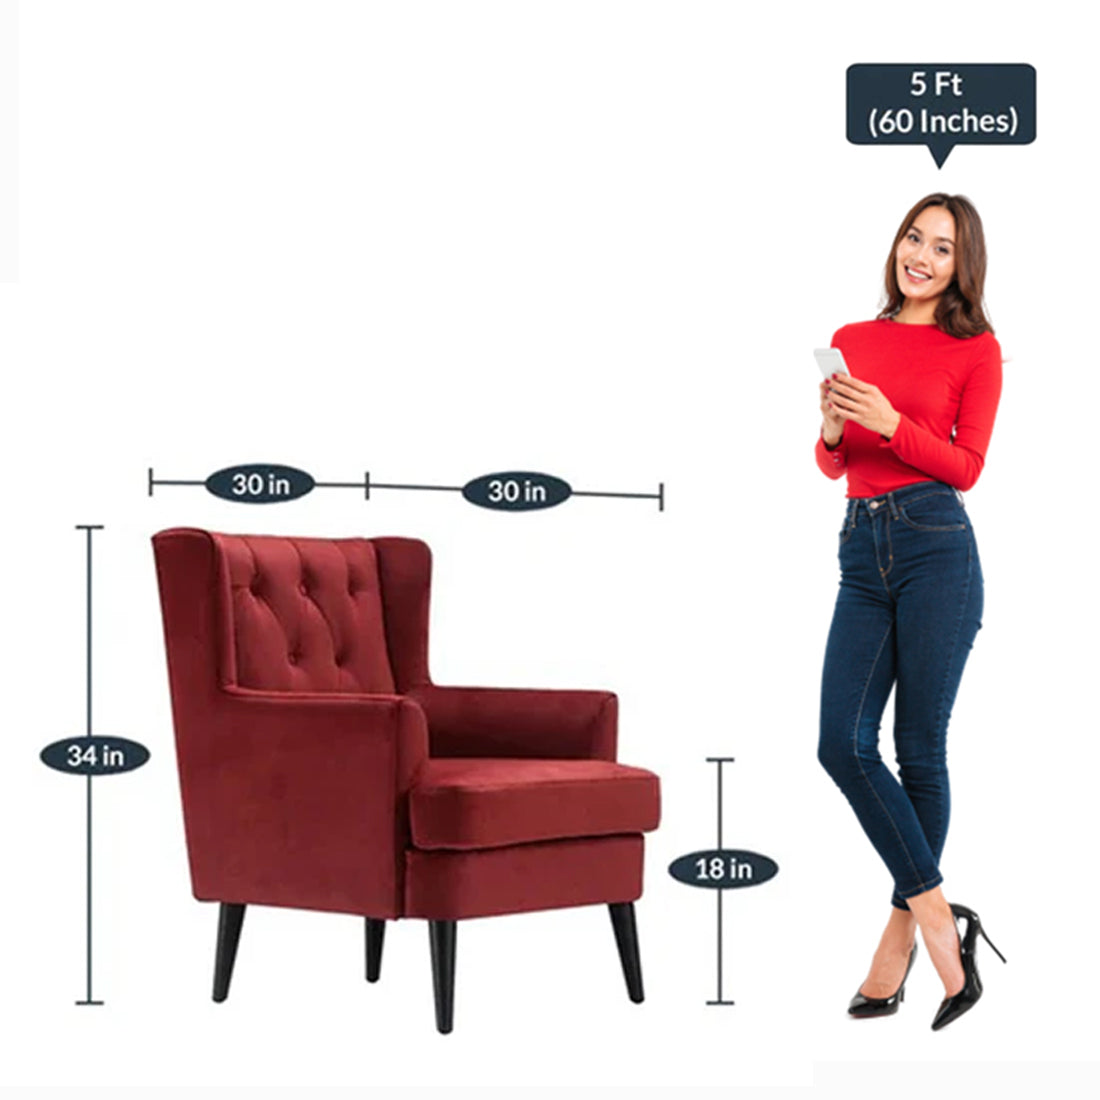 Detec™ Wing Chair - Red Color